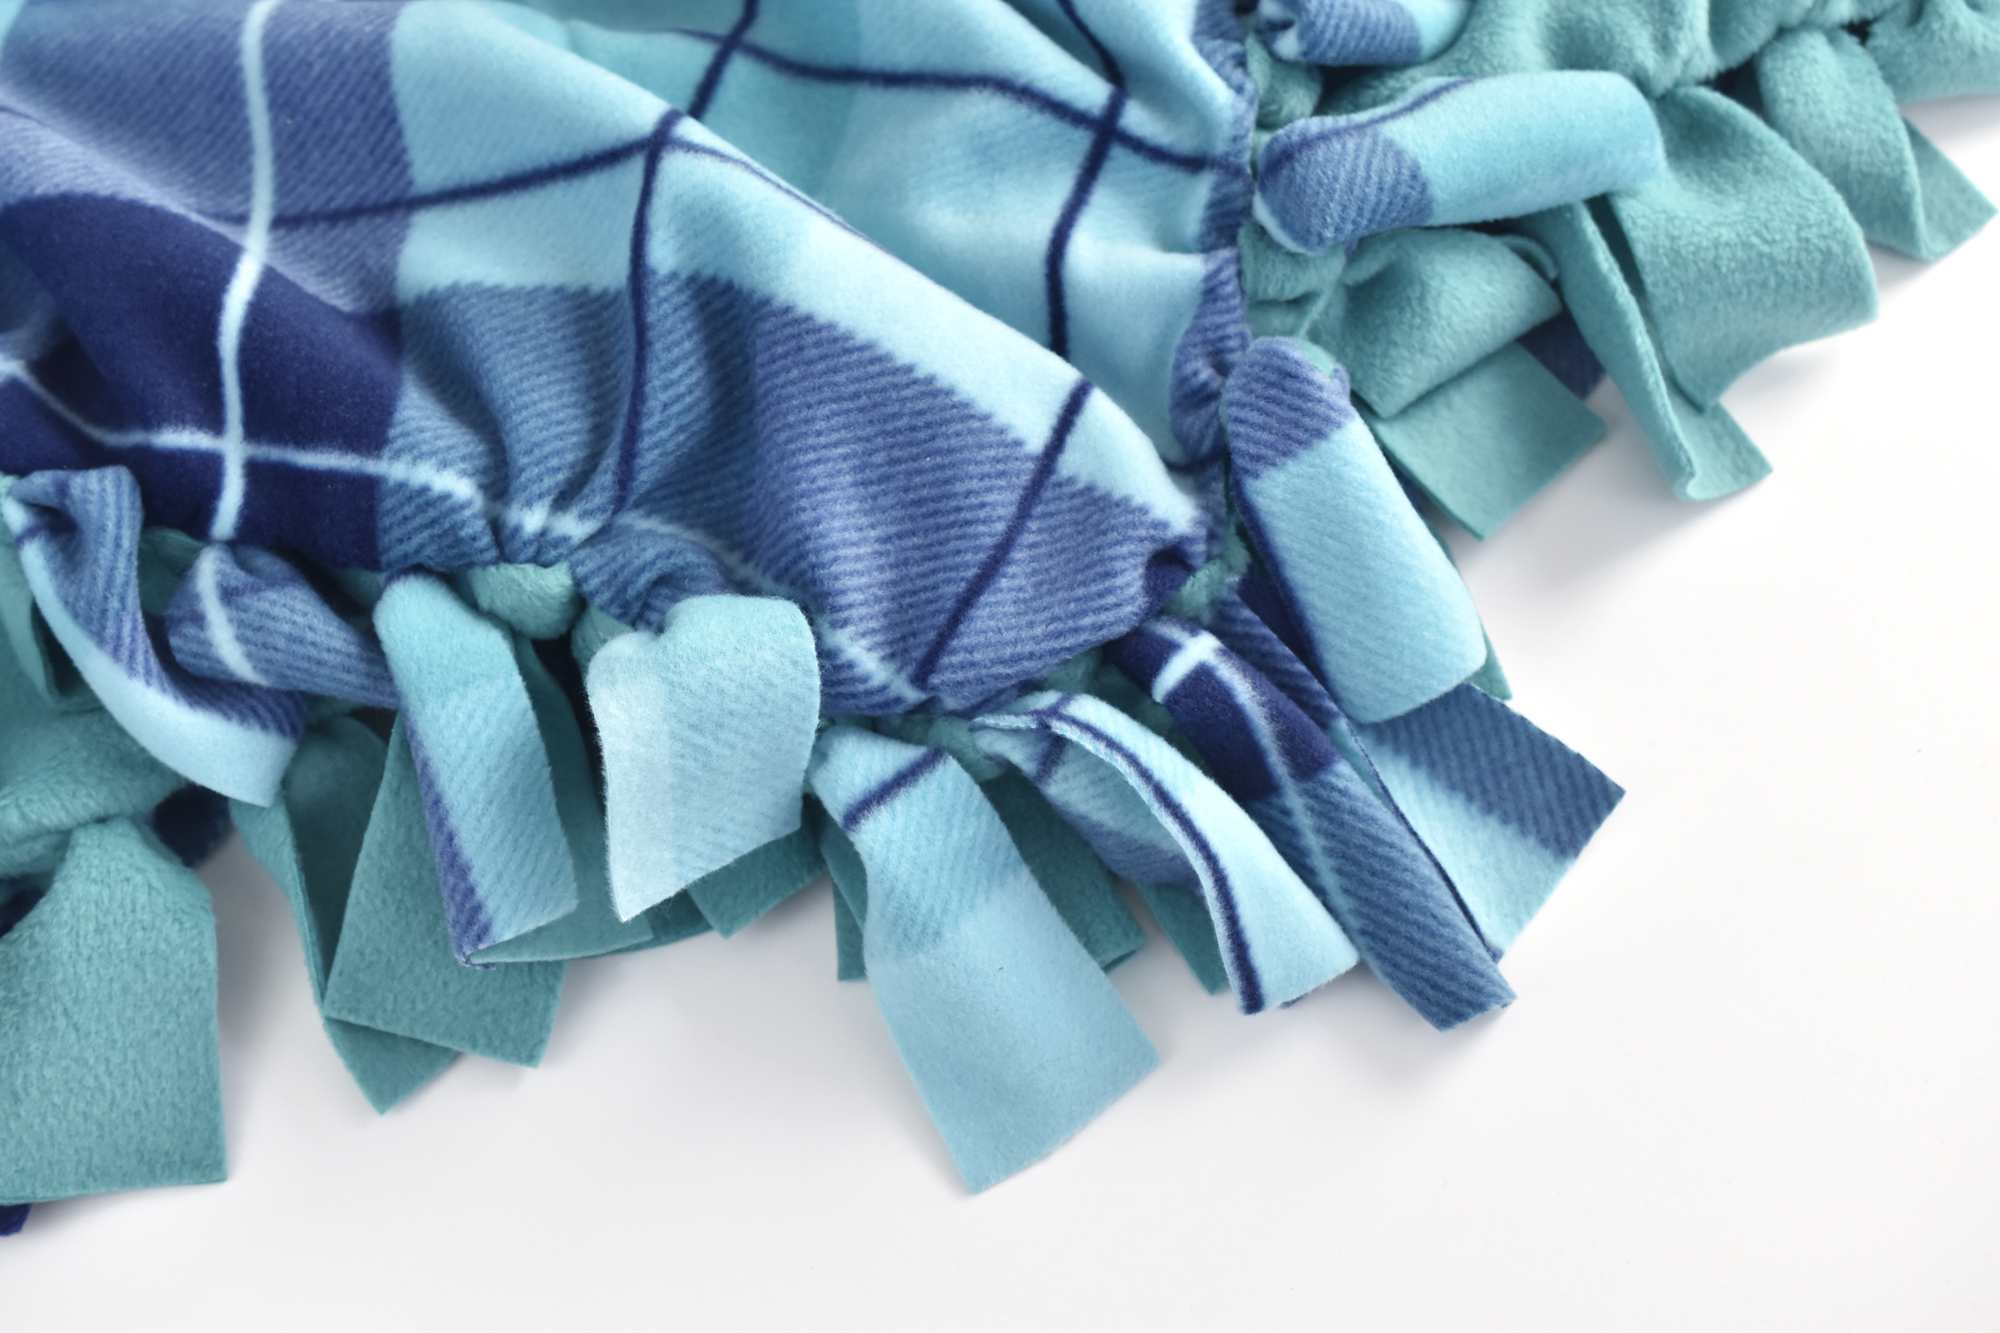 5fbddae0e0 How to Make a Fleece Tie Blanket